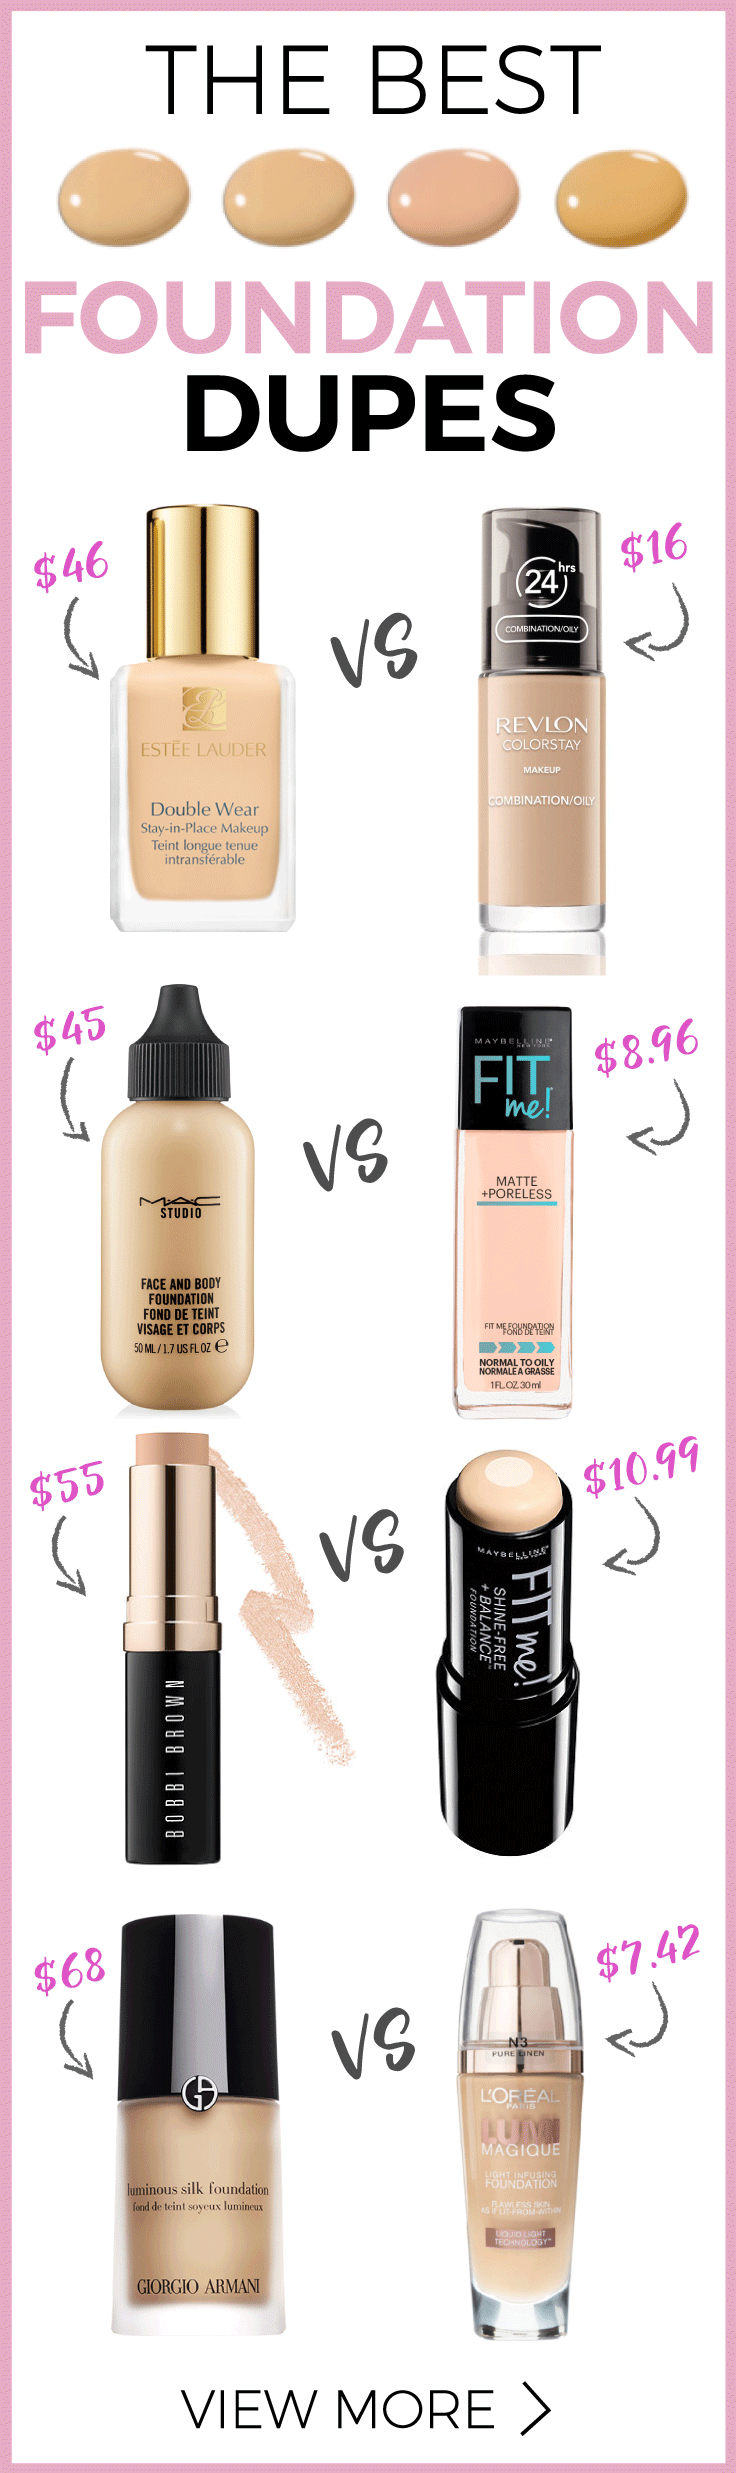 Get the Inside Scoop on the Best Foundation Dupes in